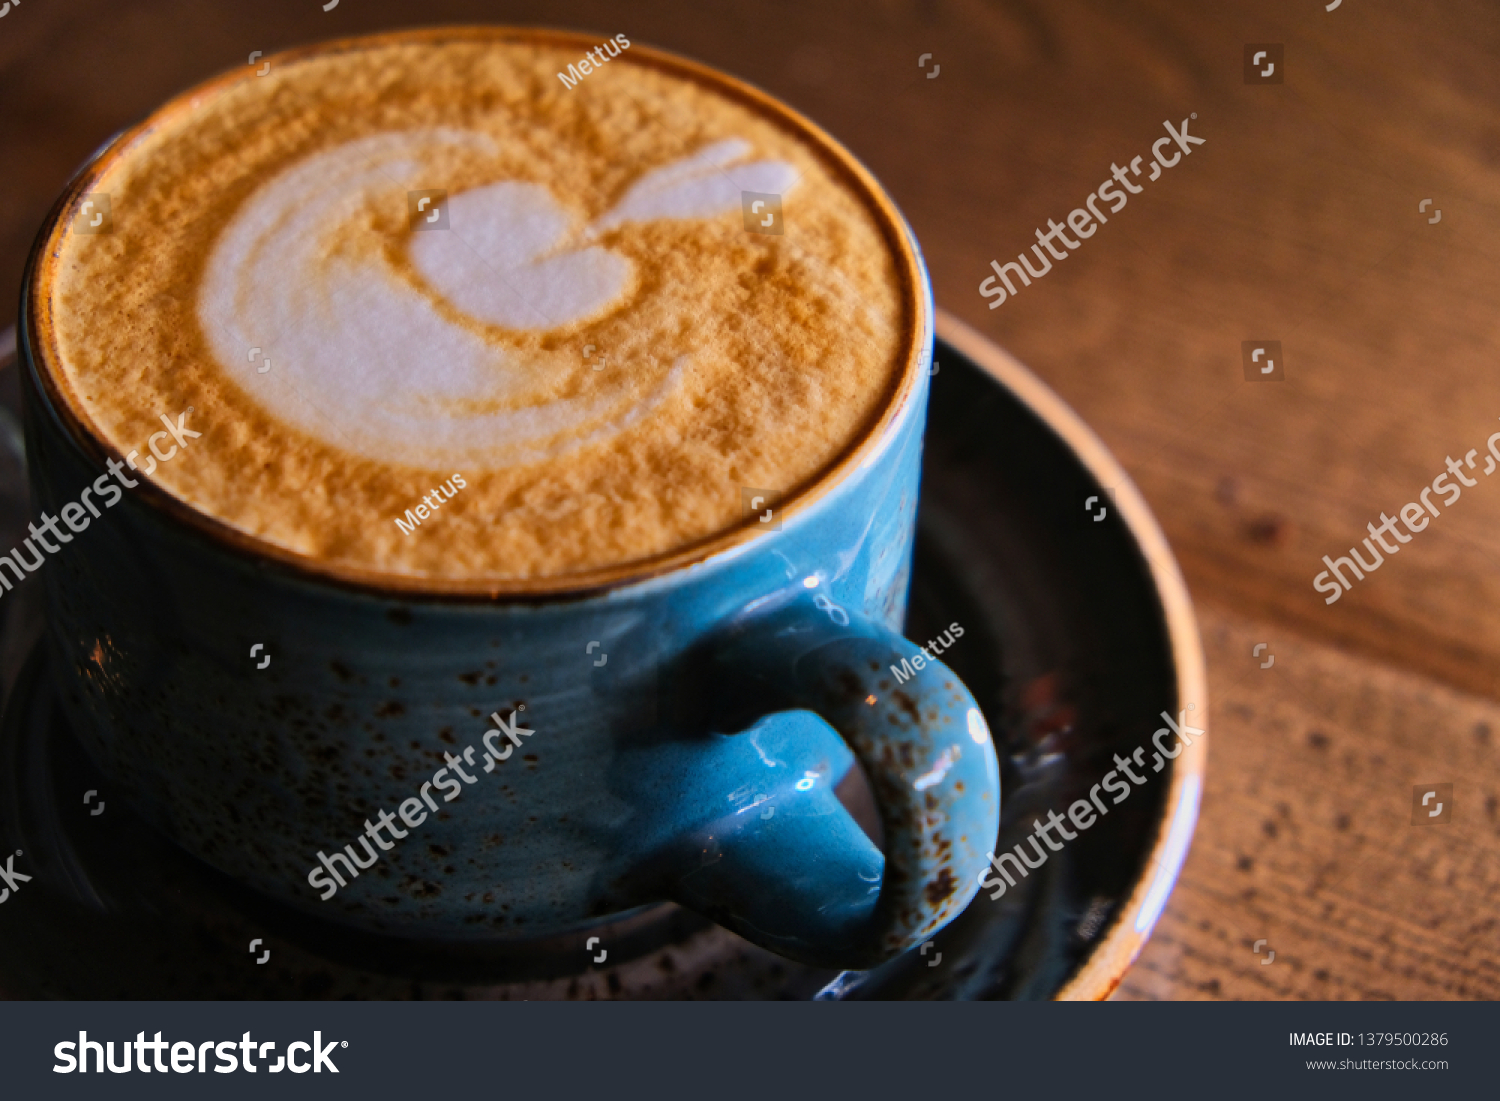 stock-photo-closeup-of-blue-cappuccino-c